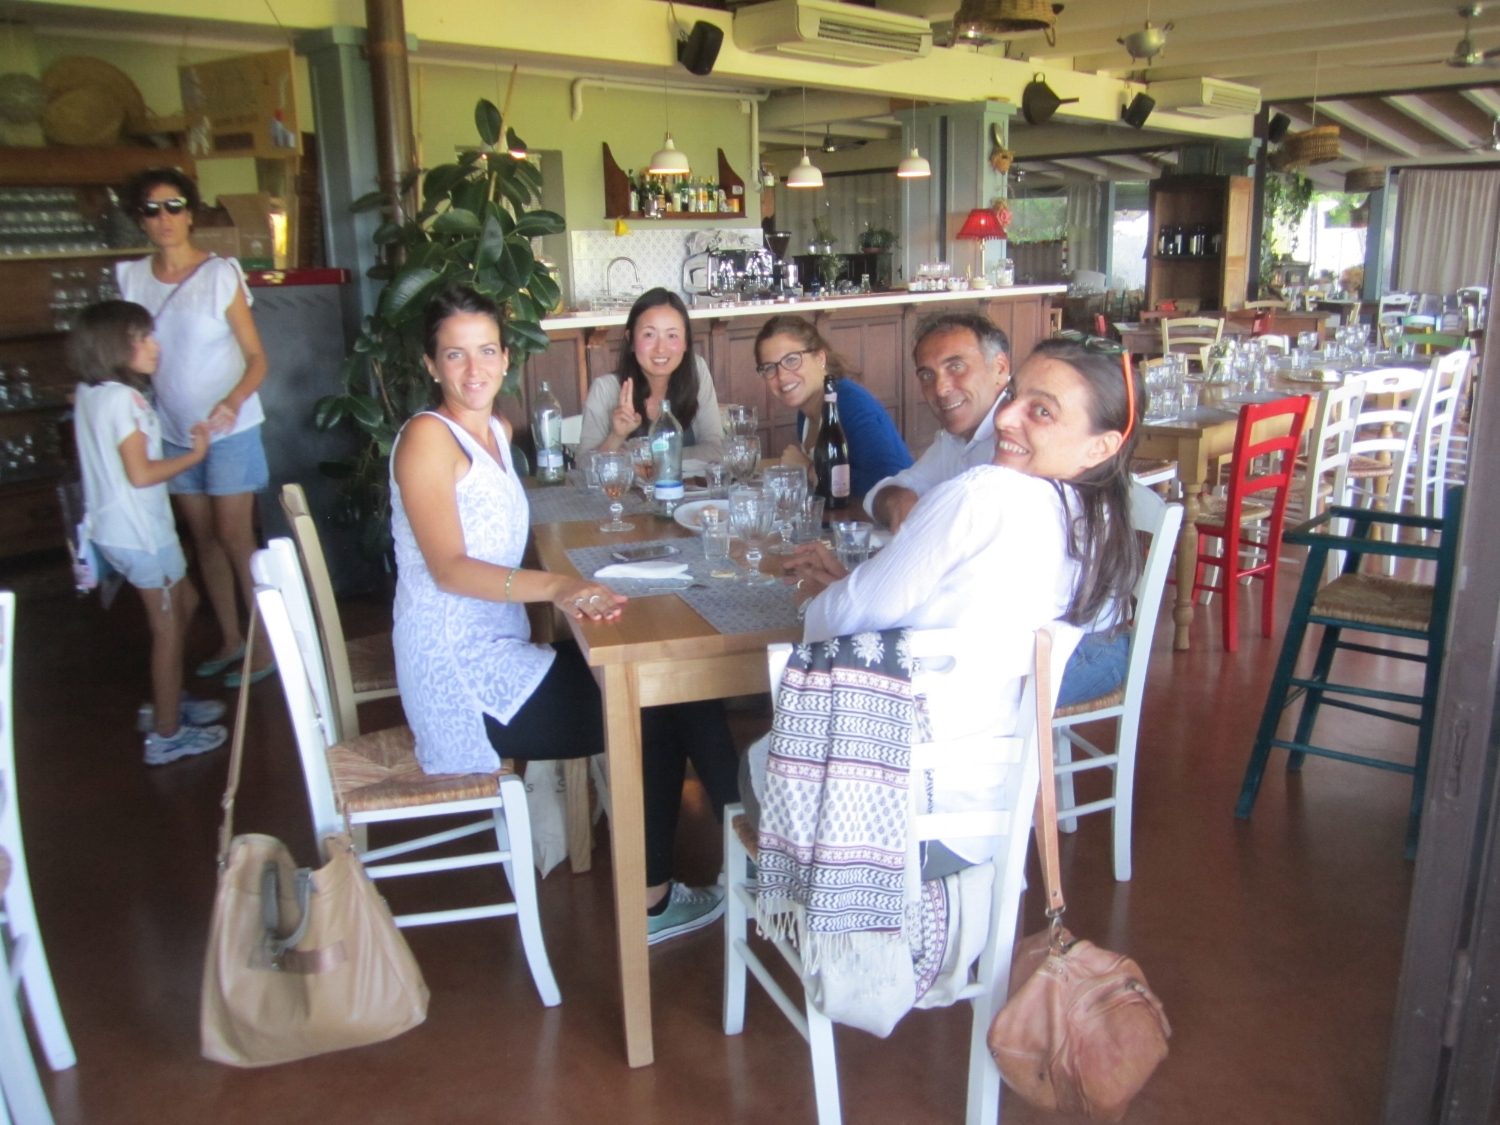 Reunion with architects of CSPE studio Cesena September 2015 (from left: Francesca, Saori, Giulia, Marco and Camilla)